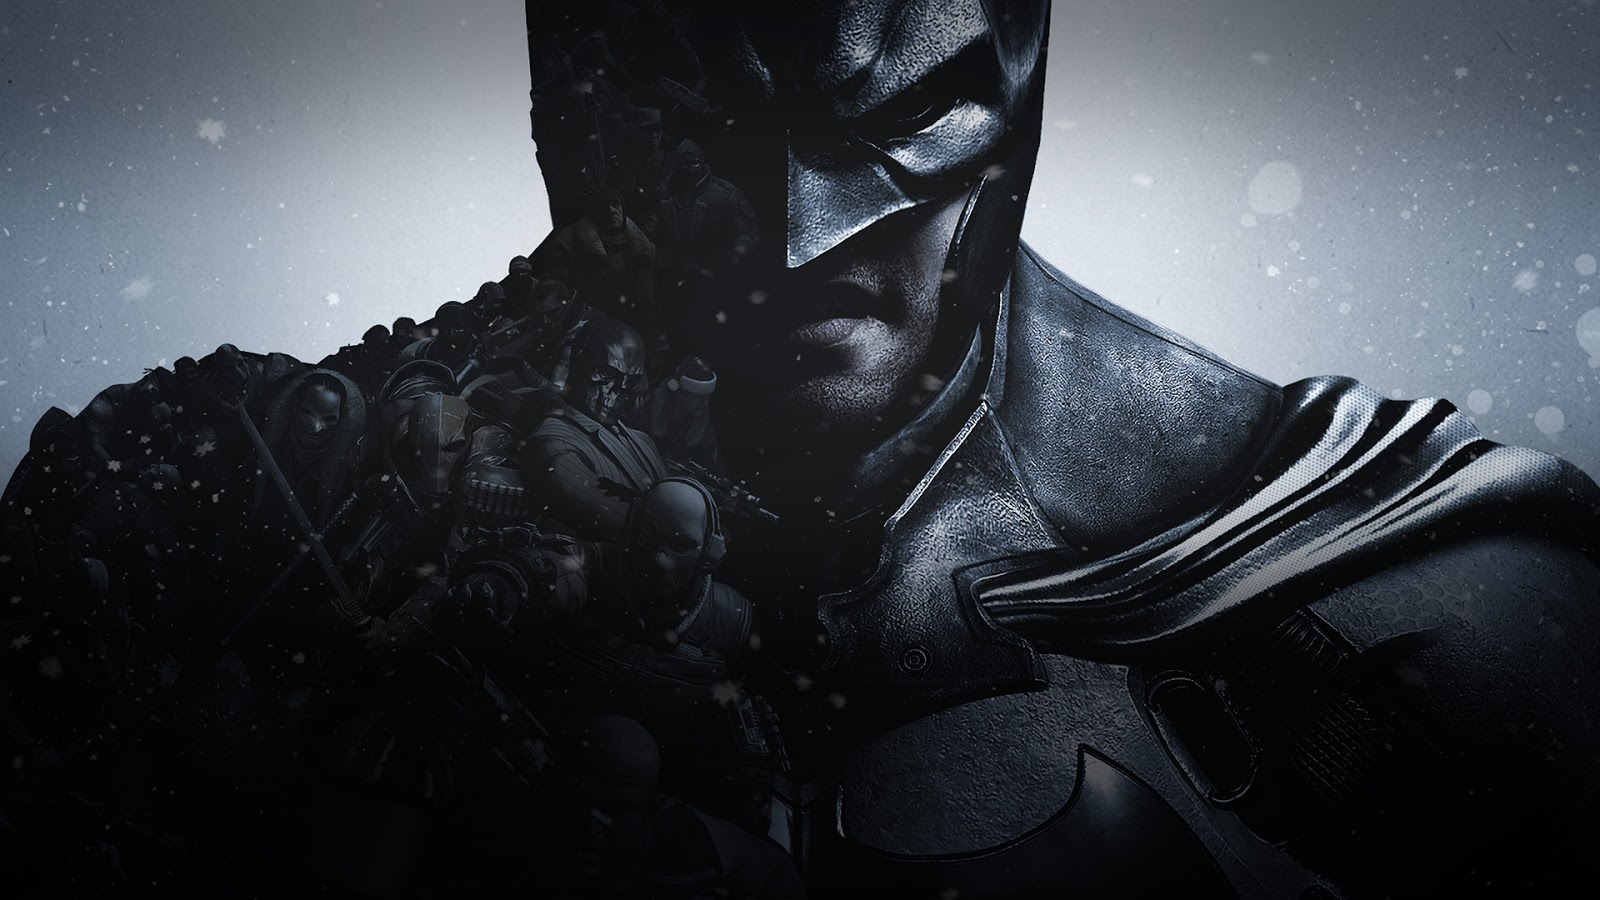 LEAGUE OF FICTION Batman Arkham Origins Desktop Wallpaper SDCC 2013 1600x900